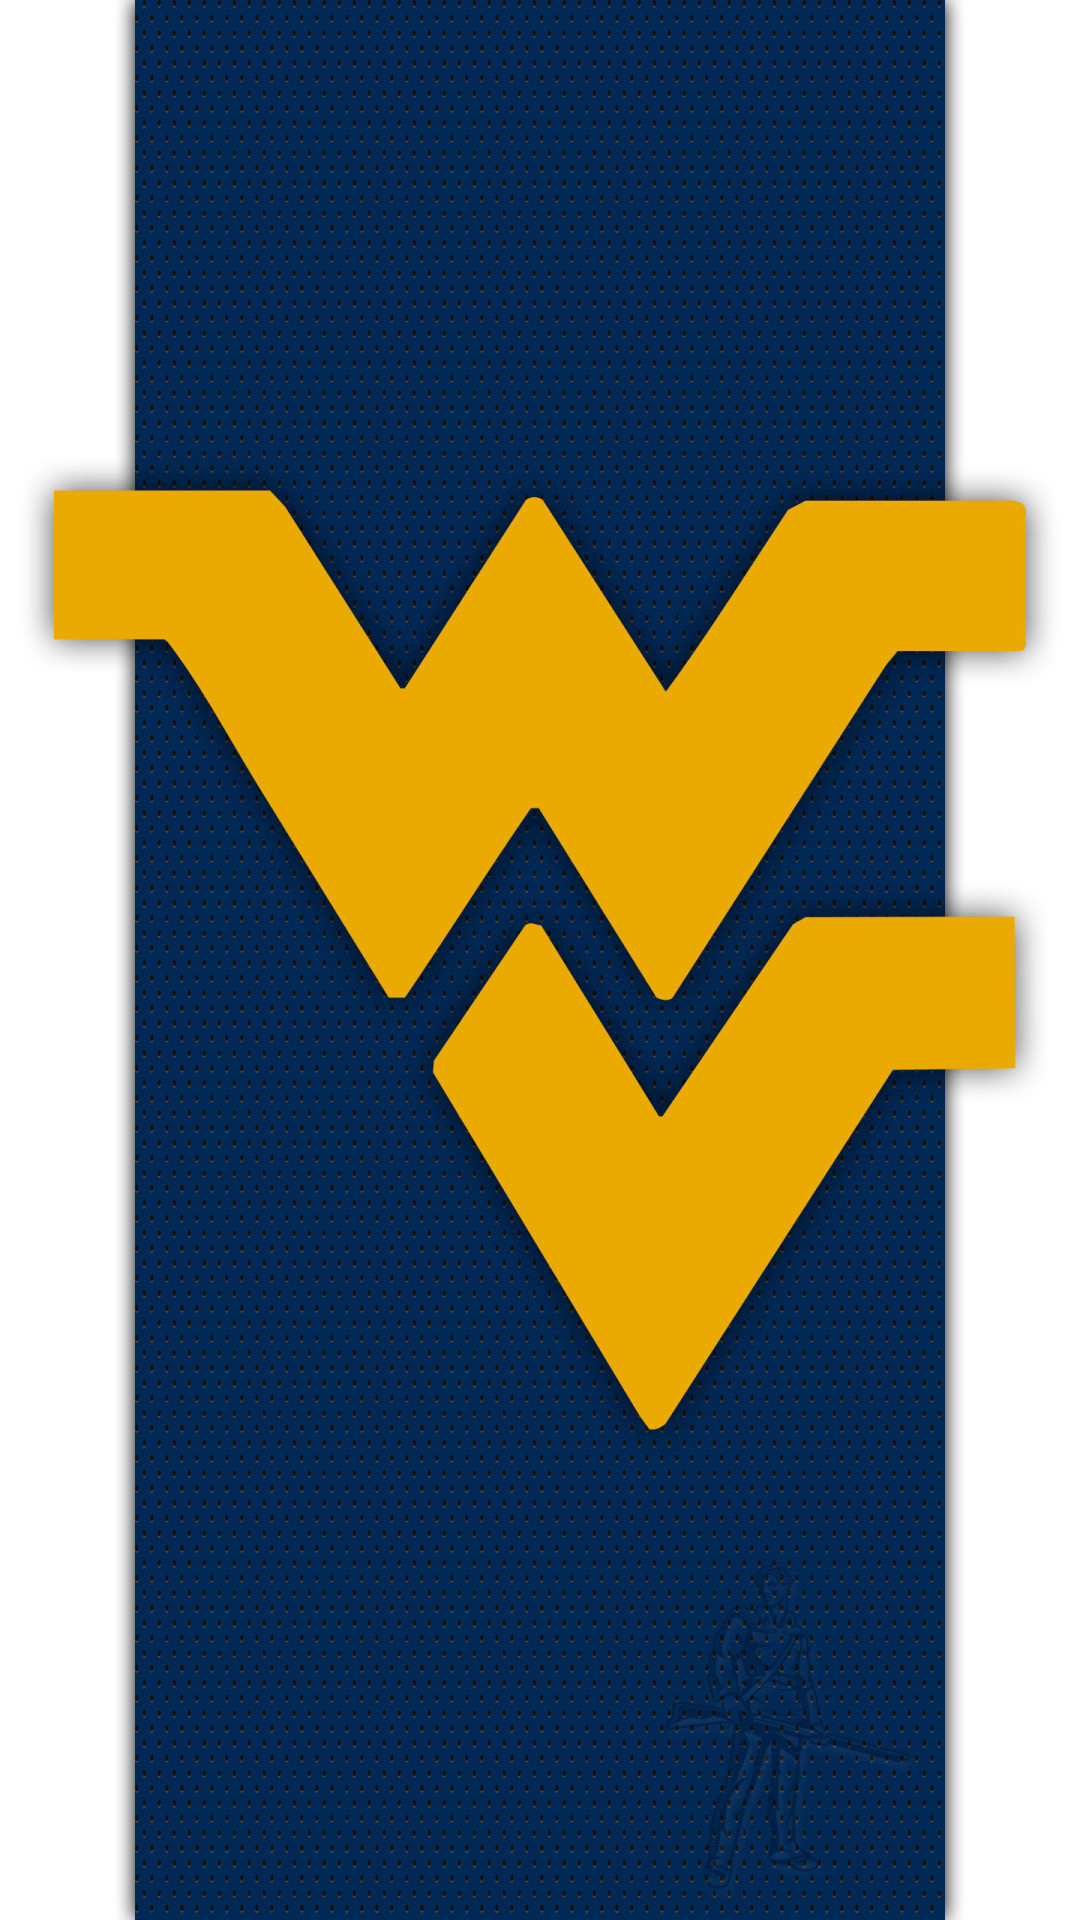 1080x1920 Search Results For West Virginia Mountaineers Iphone Wallpaper Adorable Wallpapers